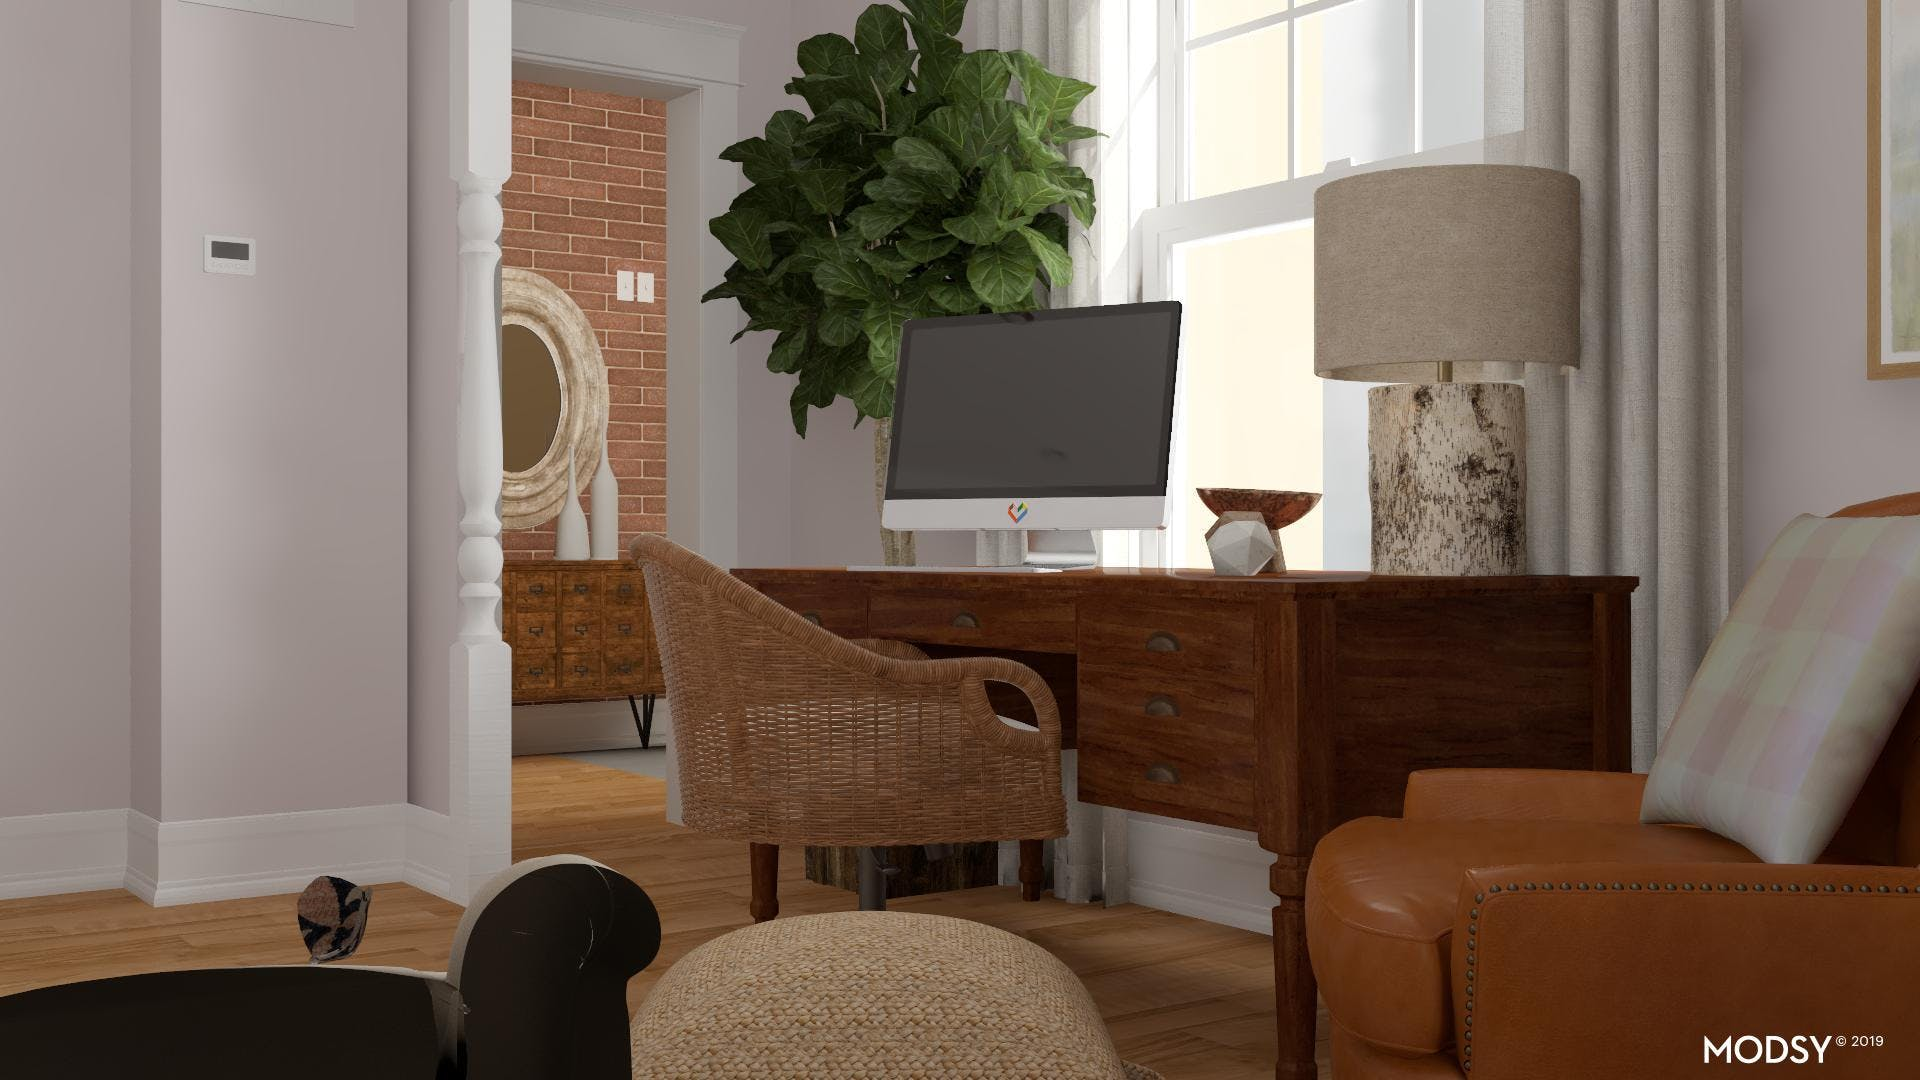 Work With Other Rooms In The House